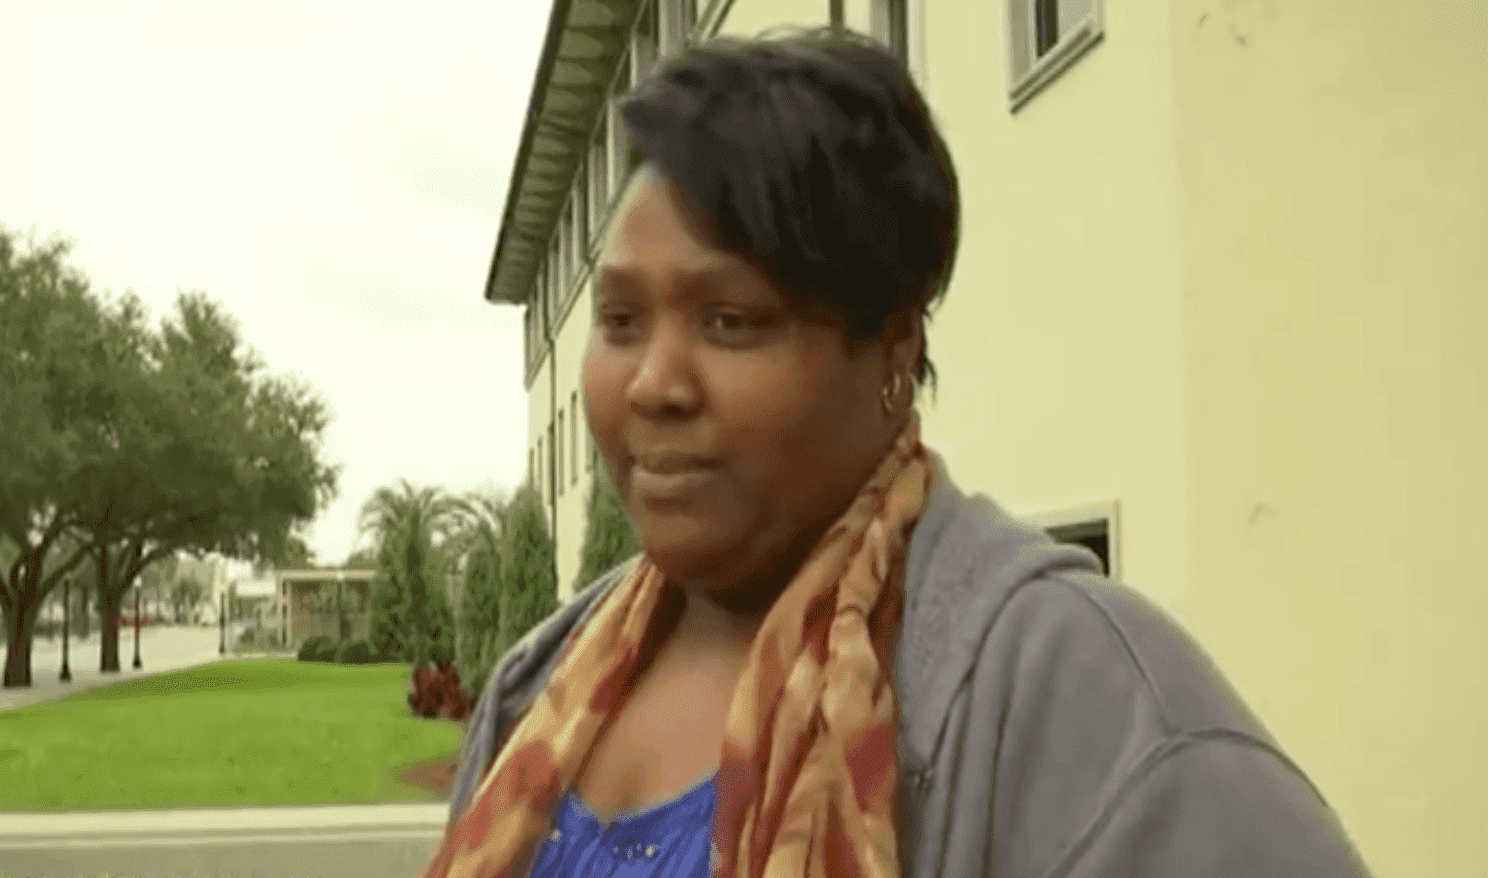 Dhakira Talbot, mother of the 11-year-old who was arrested | Photo: Facebook/Hezakya Newz